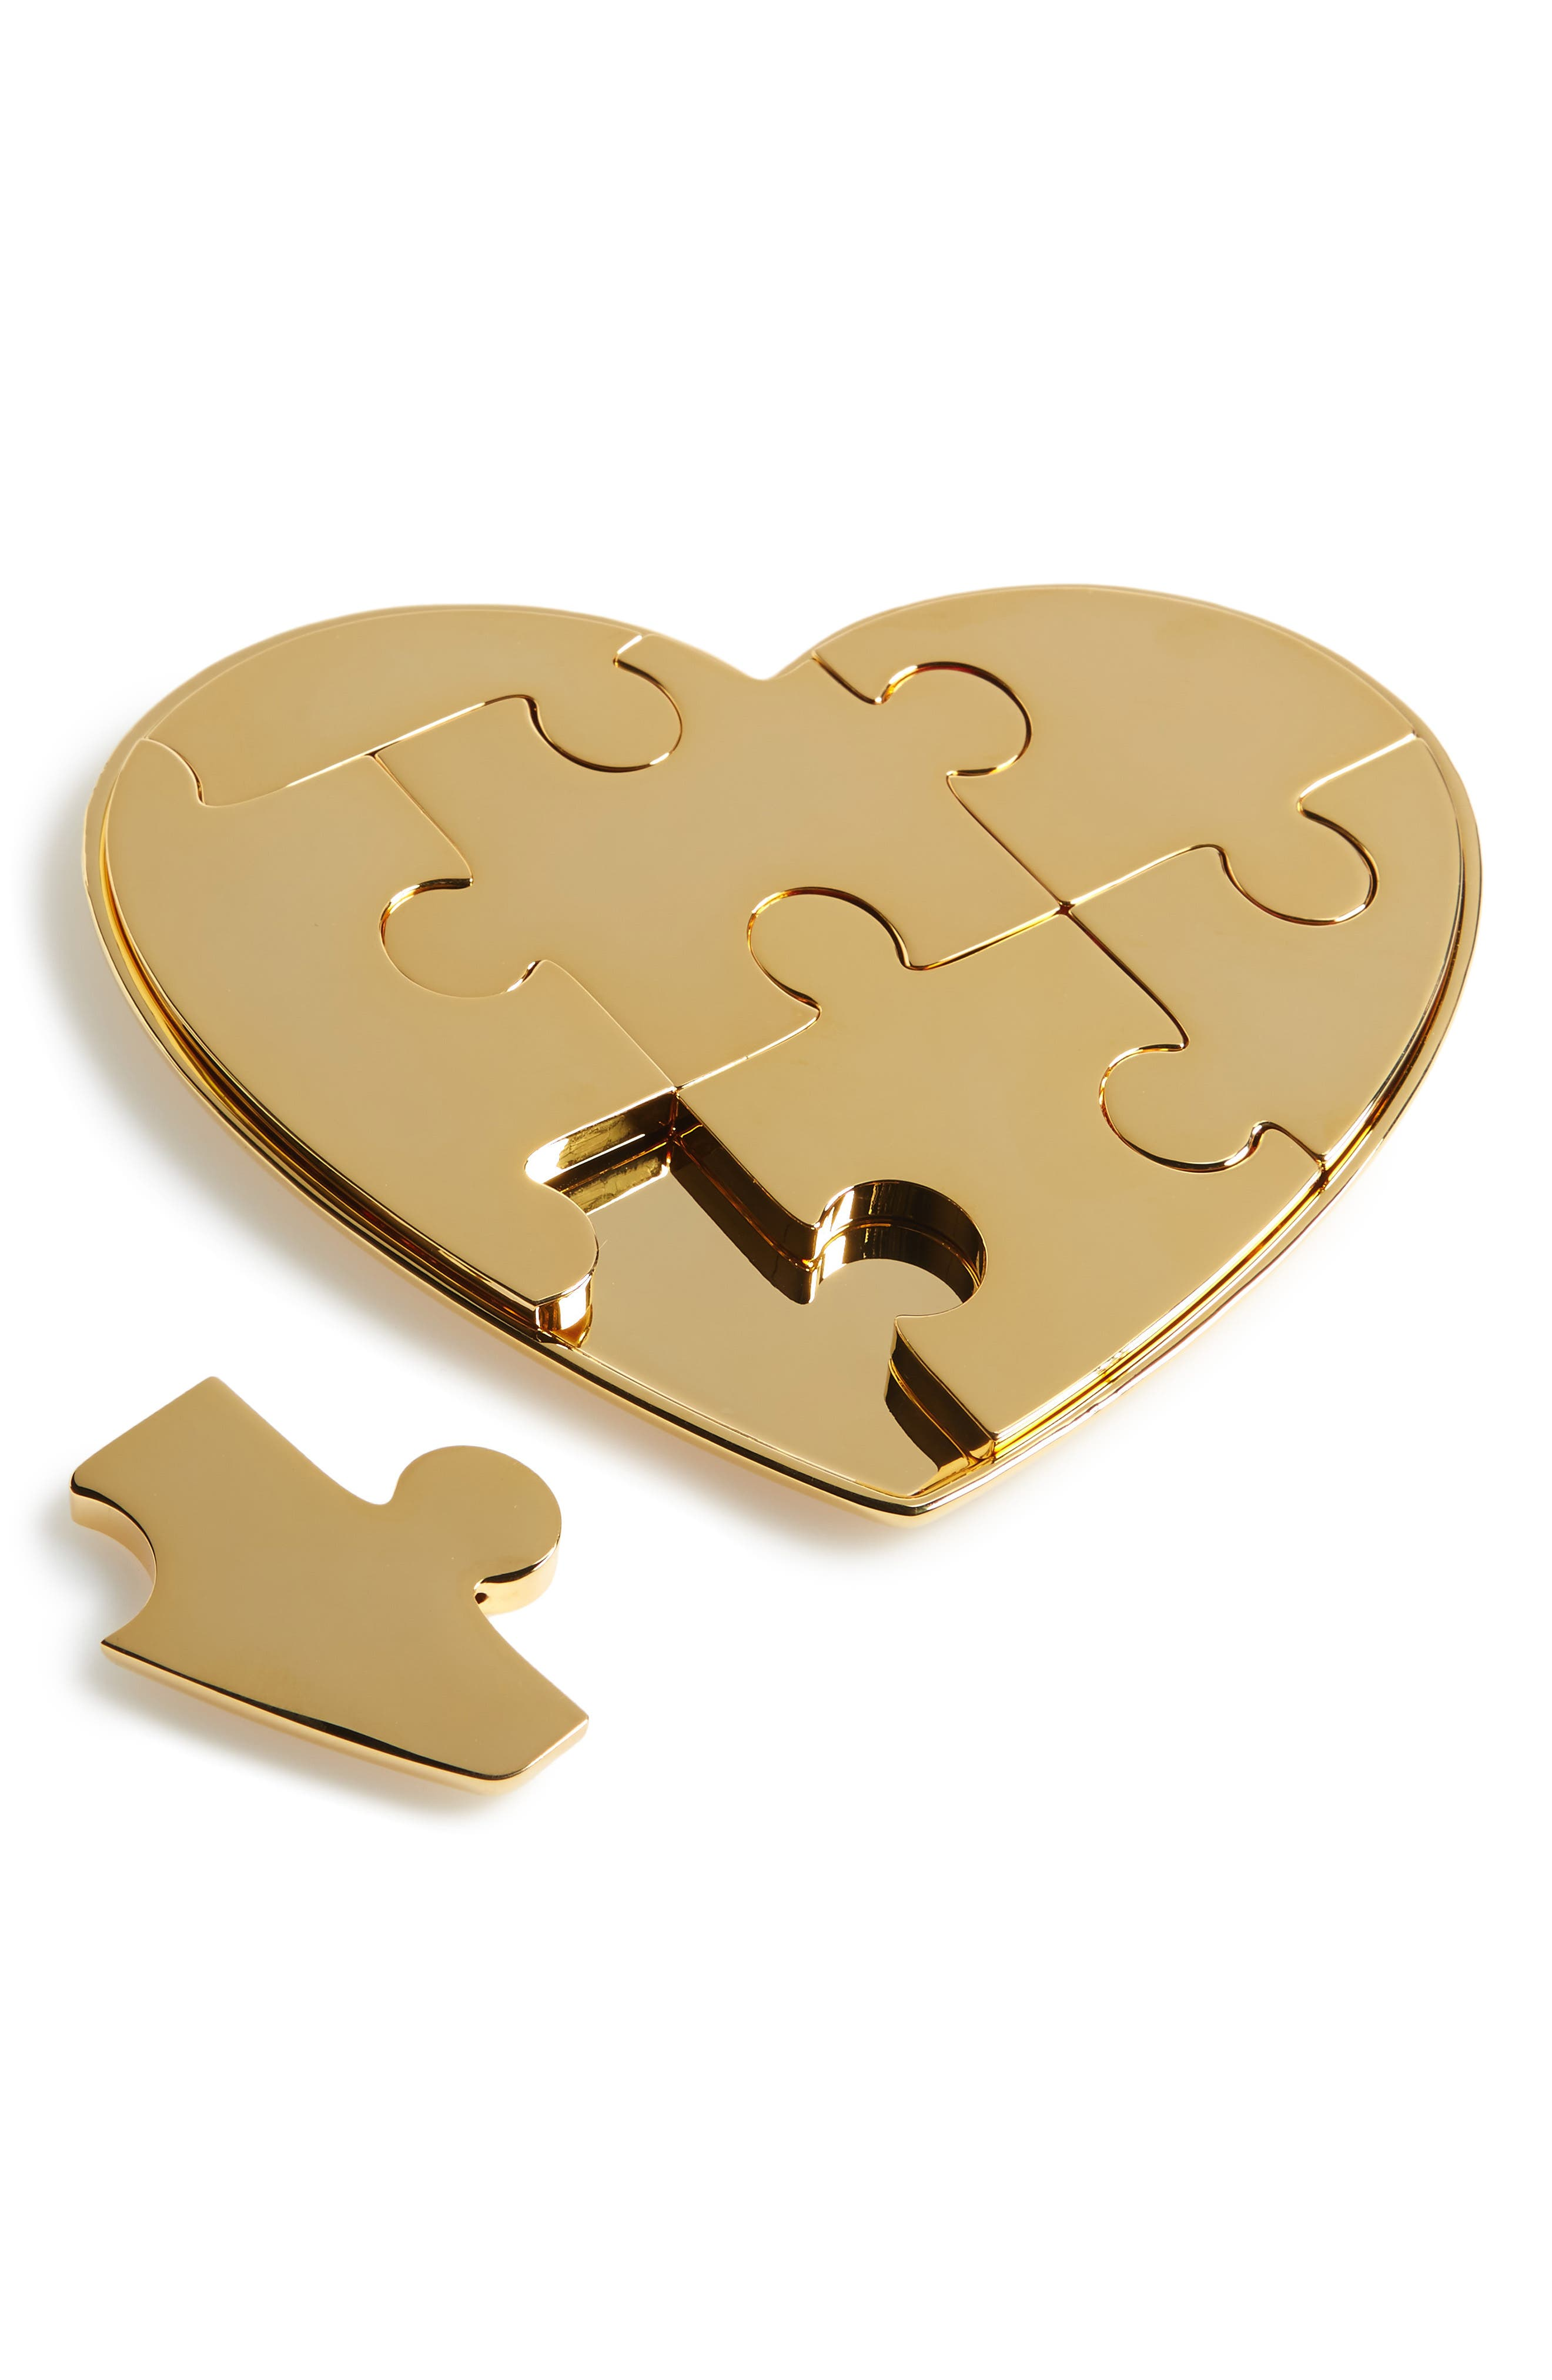 Alternate Image 1 Selected - AERIN Heart Jigsaw Puzzle